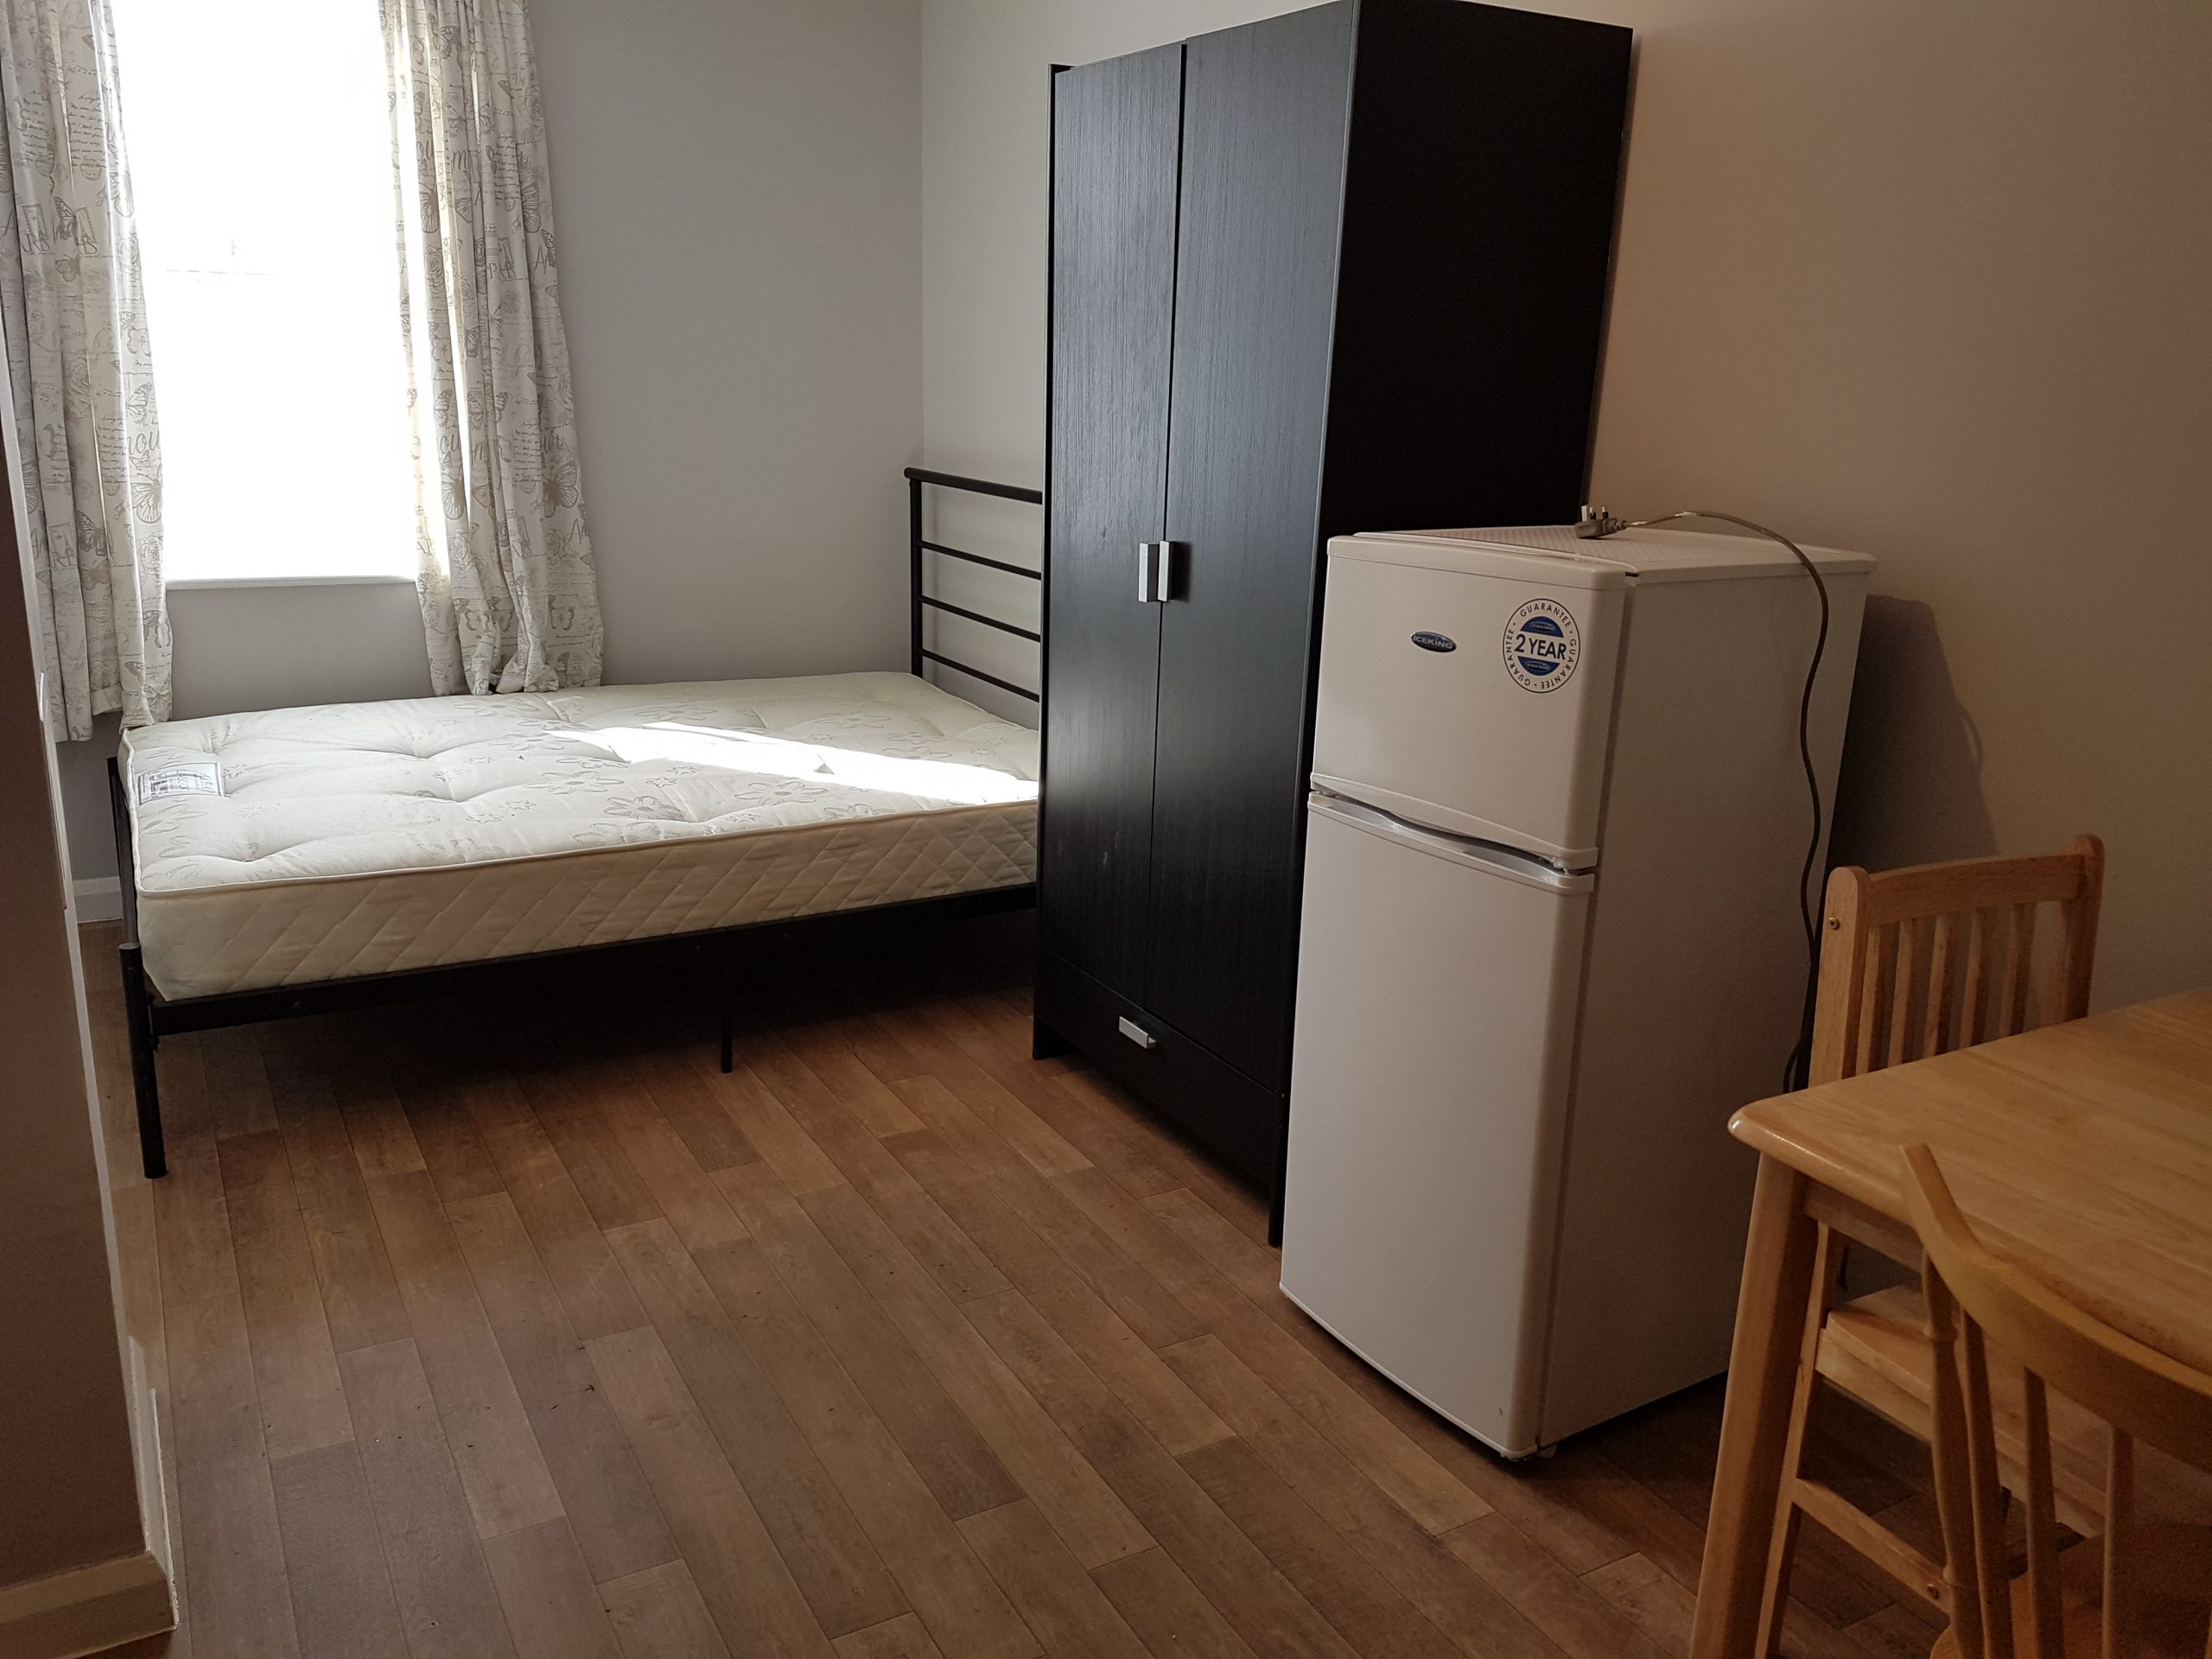 Studio Flat Stroud Green Road N4 2DF